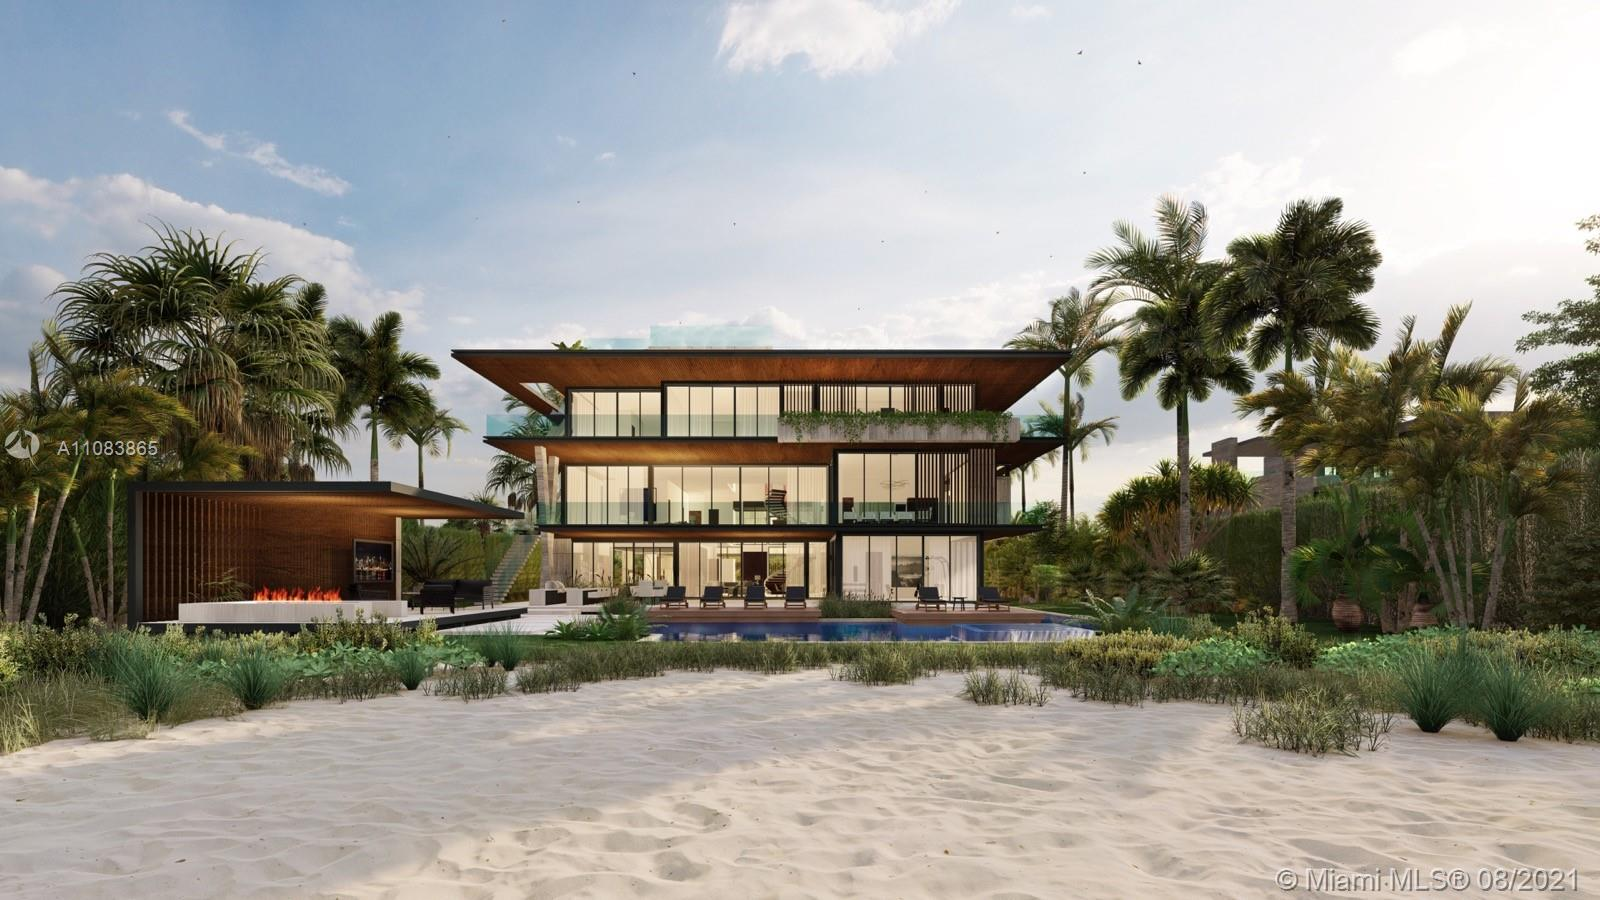 Oceanfront Bliss! Pre Construction Opportunity! Welcome Home to your BRAND NEW Golden Beach oceanfront estate by SDH Studio Architecture + Design and TREO Construction boasting 18,500 sq ft, 9 bedrooms, 12 1/2 bathrooms meticulously designed throughout 3 stories including an oversized sunset rooftop with a hot tub. Offering the ideal 100 ft of oceanfront, on a 28,400sqft lot with the private sands of Golden Beach as your backyard, enjoy the peaceful serenity of the home's outdoor features such as the gazebo, lap pool, summer kitchen, cabana bath and sundeck. Complete guest house with 2 en suite bedrooms. Smart home with Lutron Automation, Movie theater, wine cellar, chef's kitchen/service kitchen,  two gyms, sauna, kids' playroom and many more exclusive features.